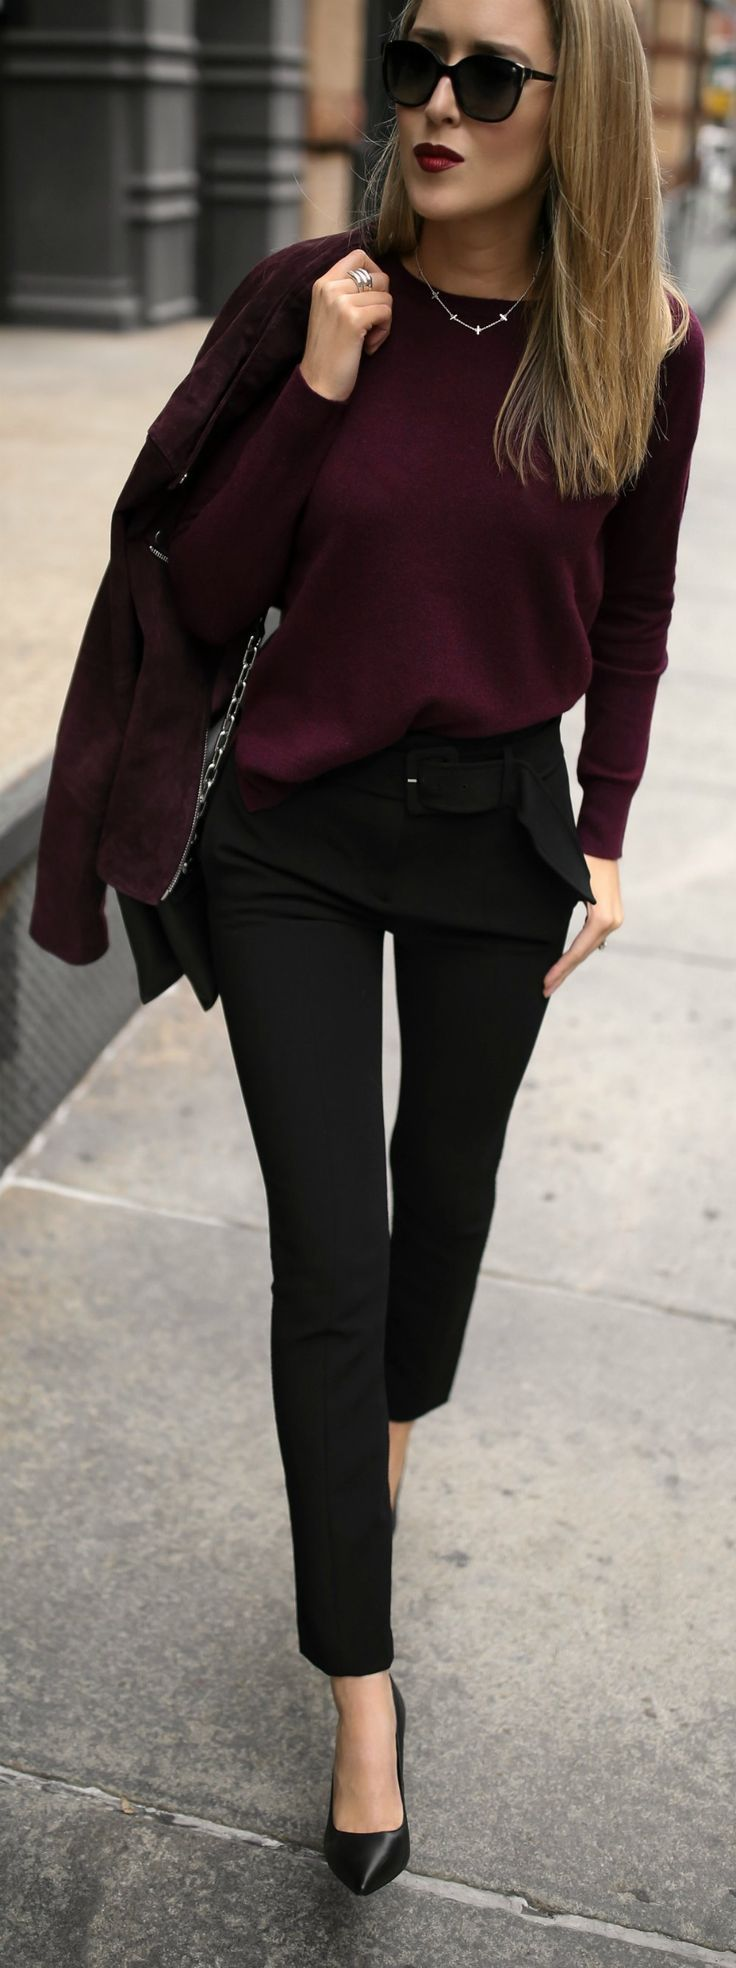 3 FALL STAPLES EVERY WORKING GIRL NEEDS // Suede burgundy moto jacket, cashmere crewneck burgundy sweater, belted cigarette pants, black leather pumps and silver hoop earrings {Theory, Aqua, Bloomingdales, wear to work, office style, casual office, cashmere sweater, fall style, fall fashion}